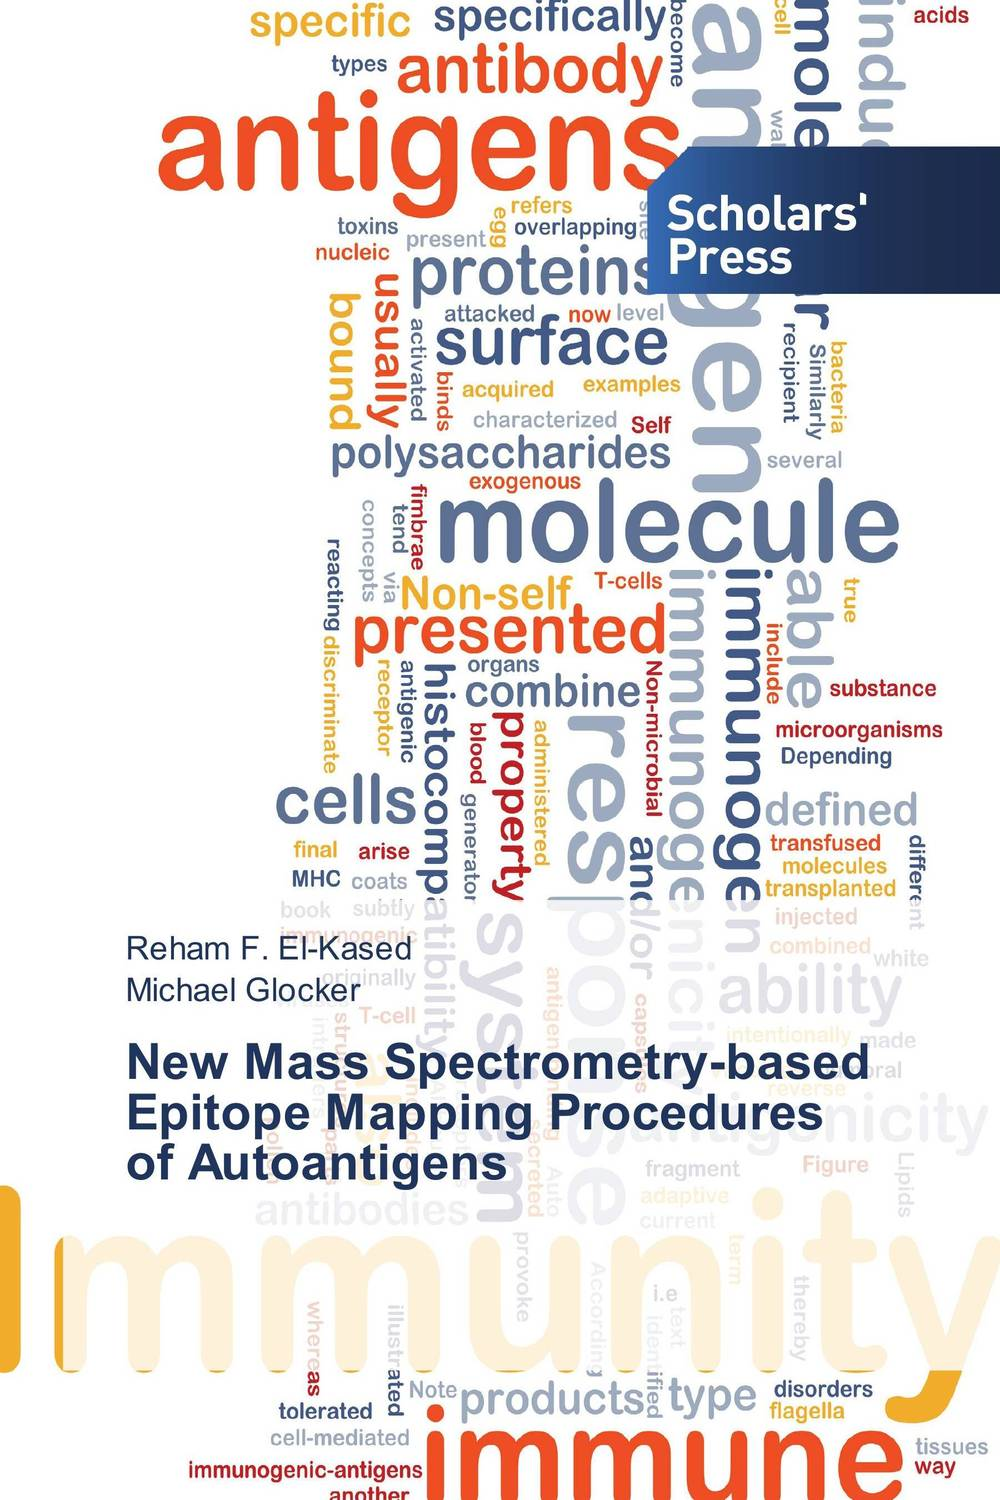 New Mass Spectrometry-based Epitope Mapping Procedures of Autoantigens the autoimmune diseases